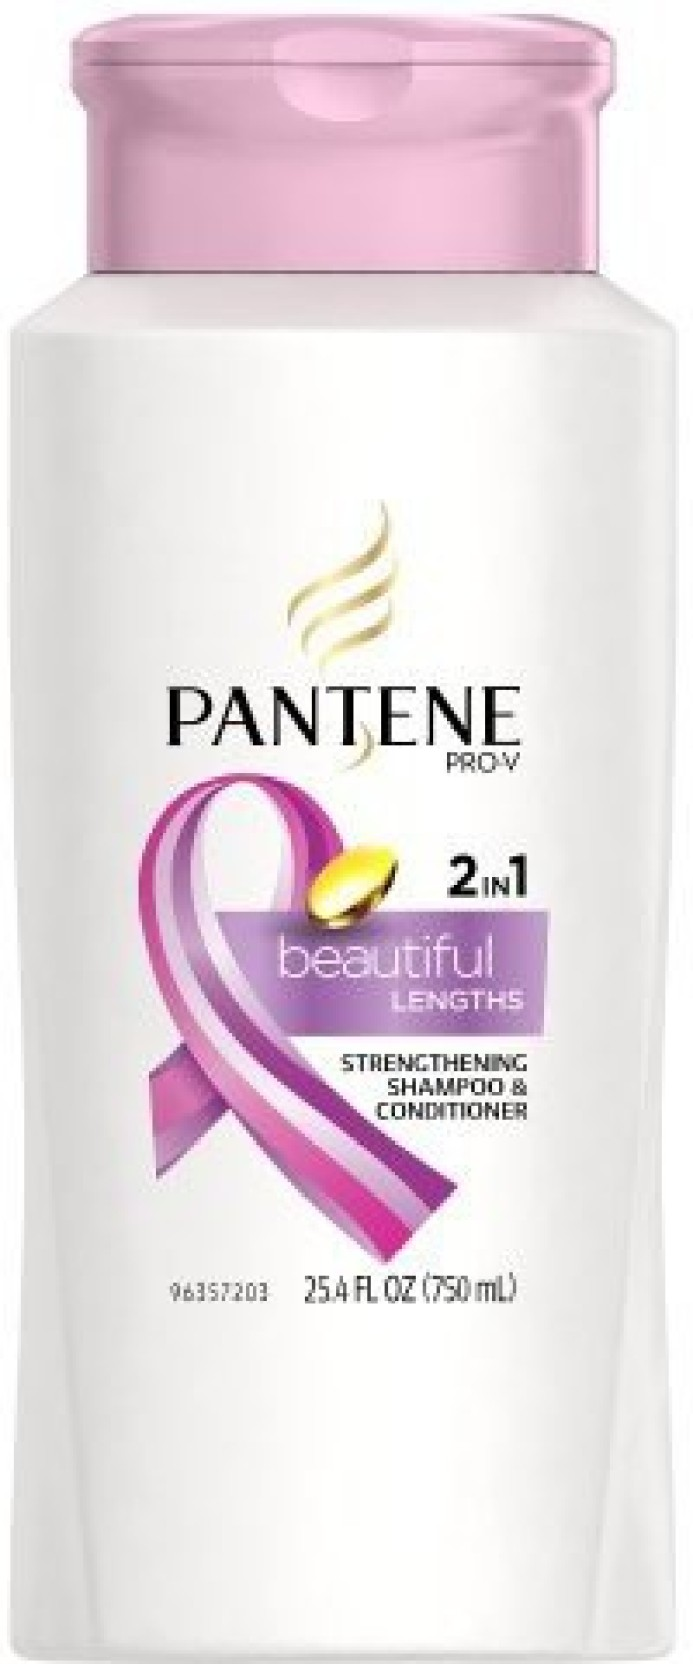 Pantene Prov Beautiful Lengths Strengthening In Shampoo Sampo Total Damage Care 750ml On Offer